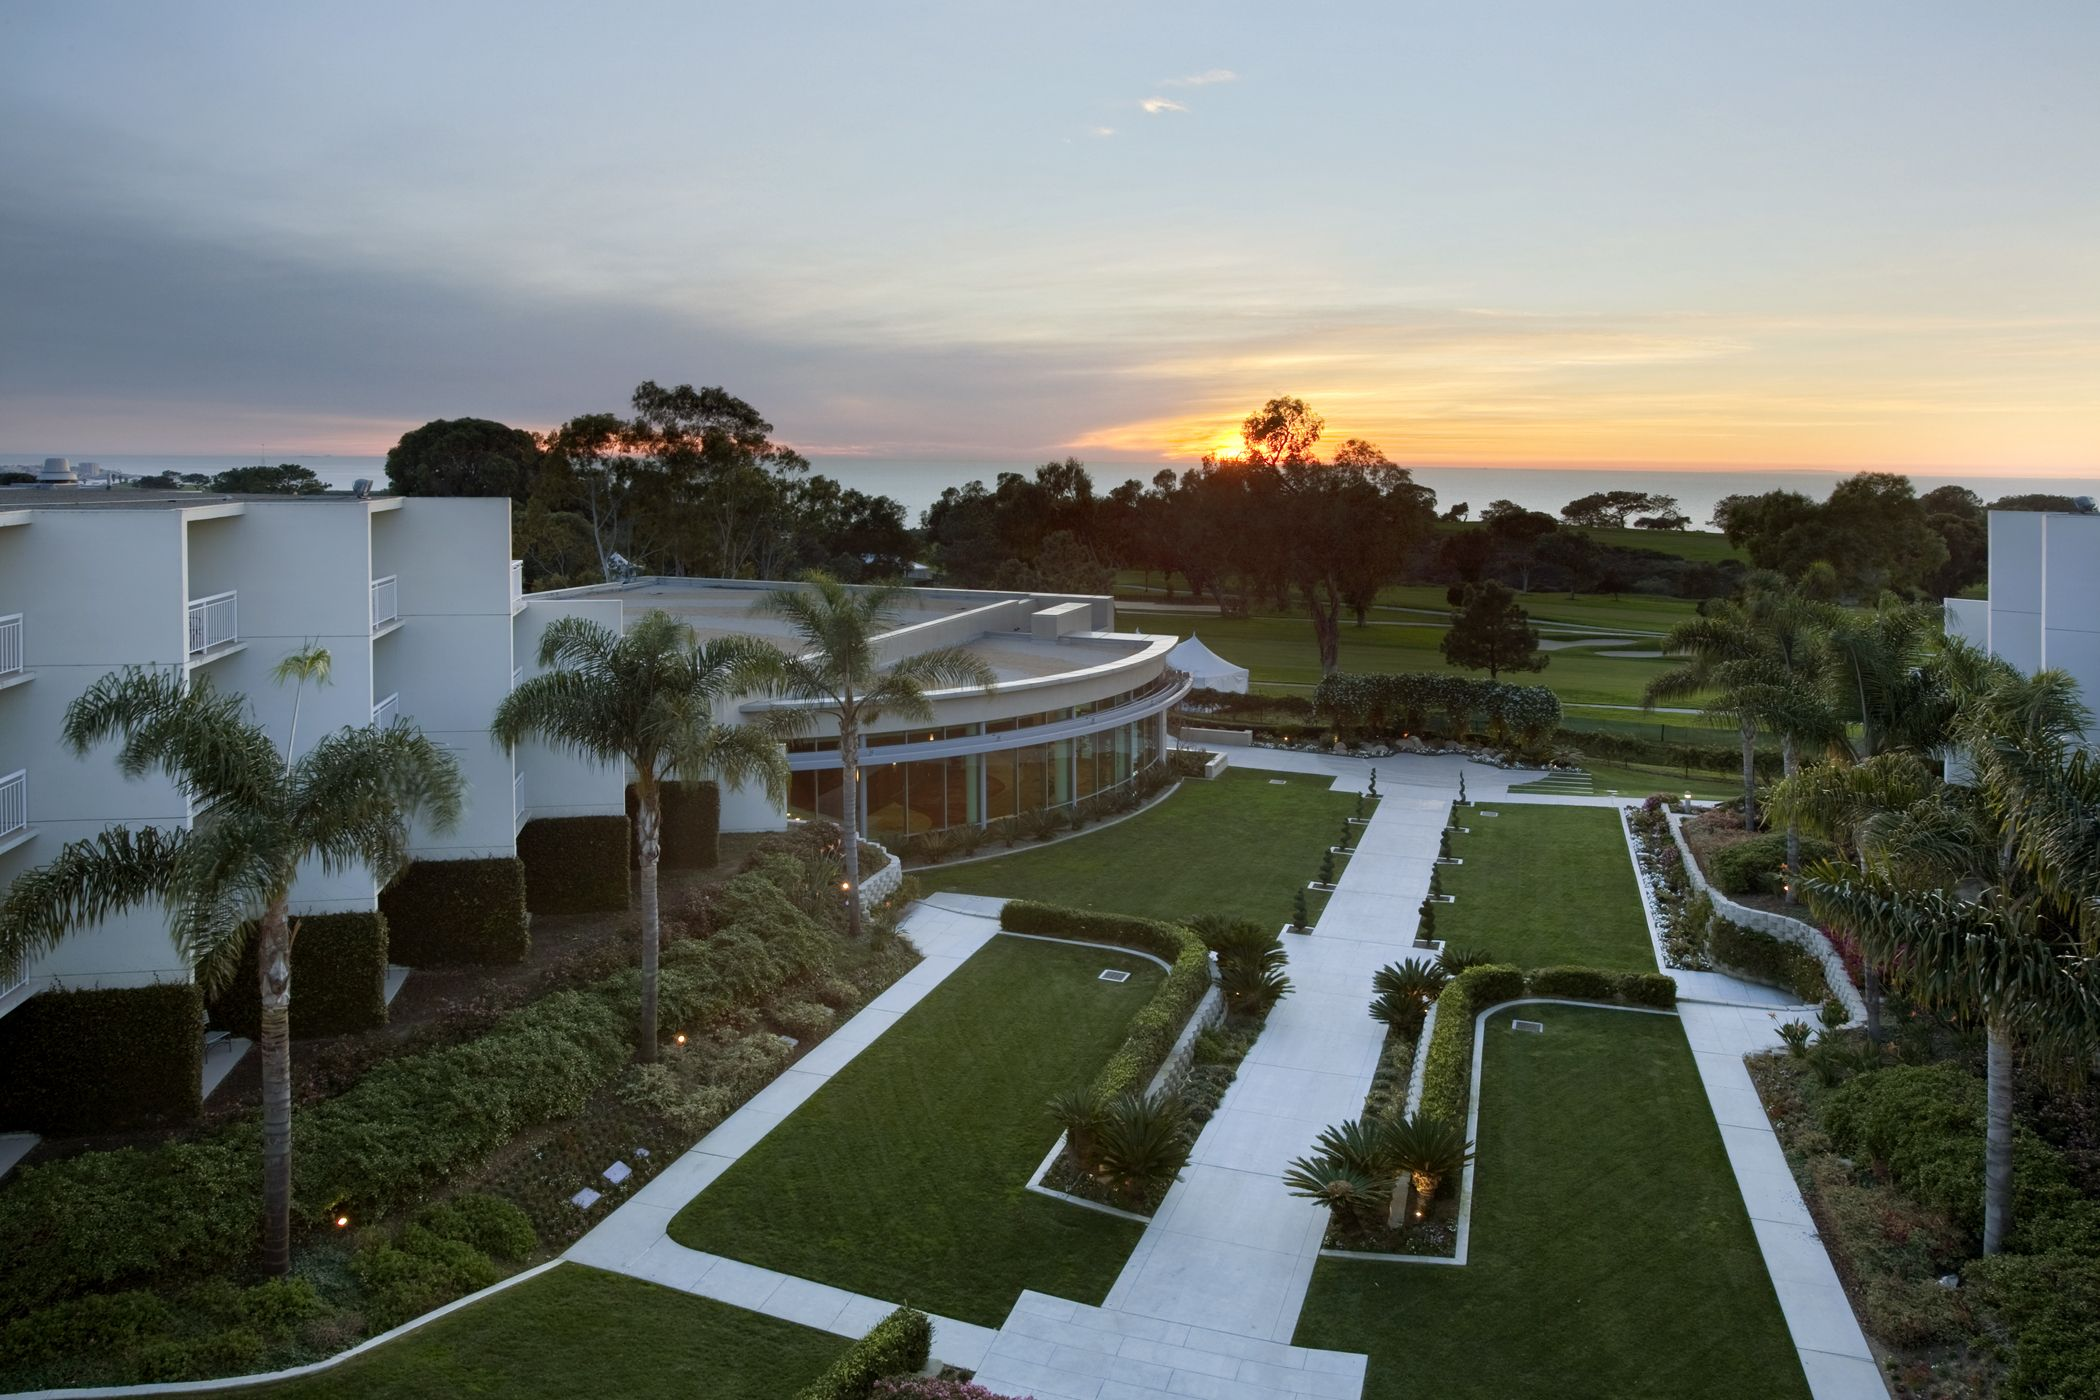 Host Your Special Event On Fairway Garden At Sunset With Images